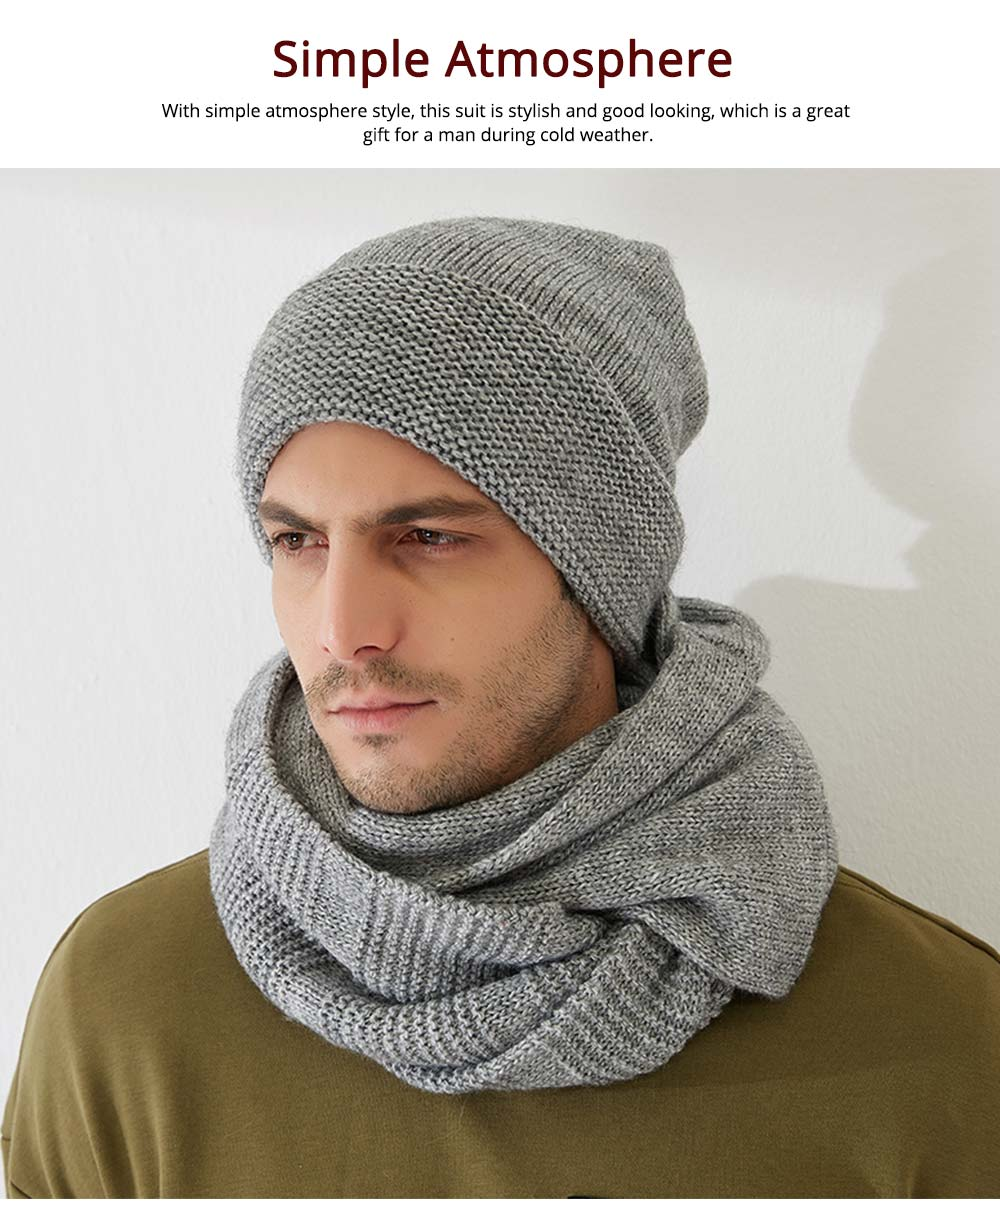 Men's Scarf and Hat 2pcs Set, Warm Soft Acrylic Elastic Face Neck Warmer Cravat 11